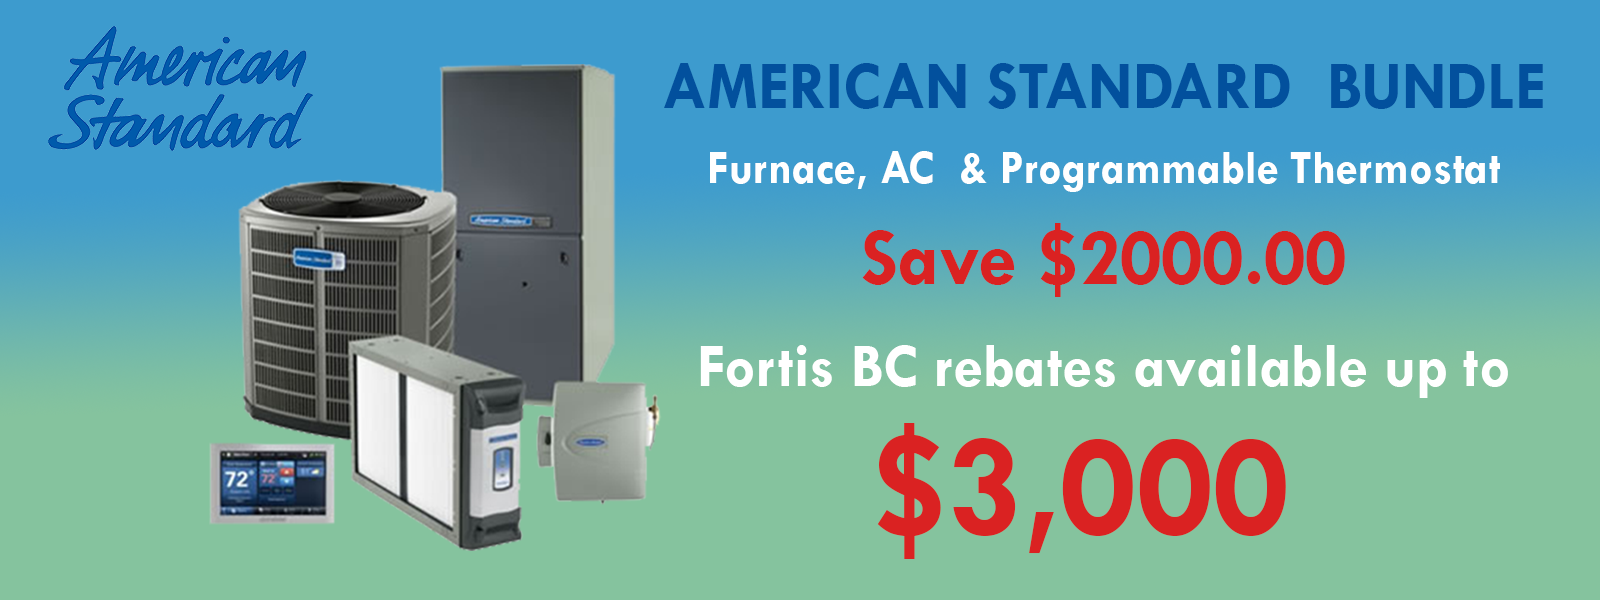 RECEIVE UP TO $3000 Rebate from FortisBC